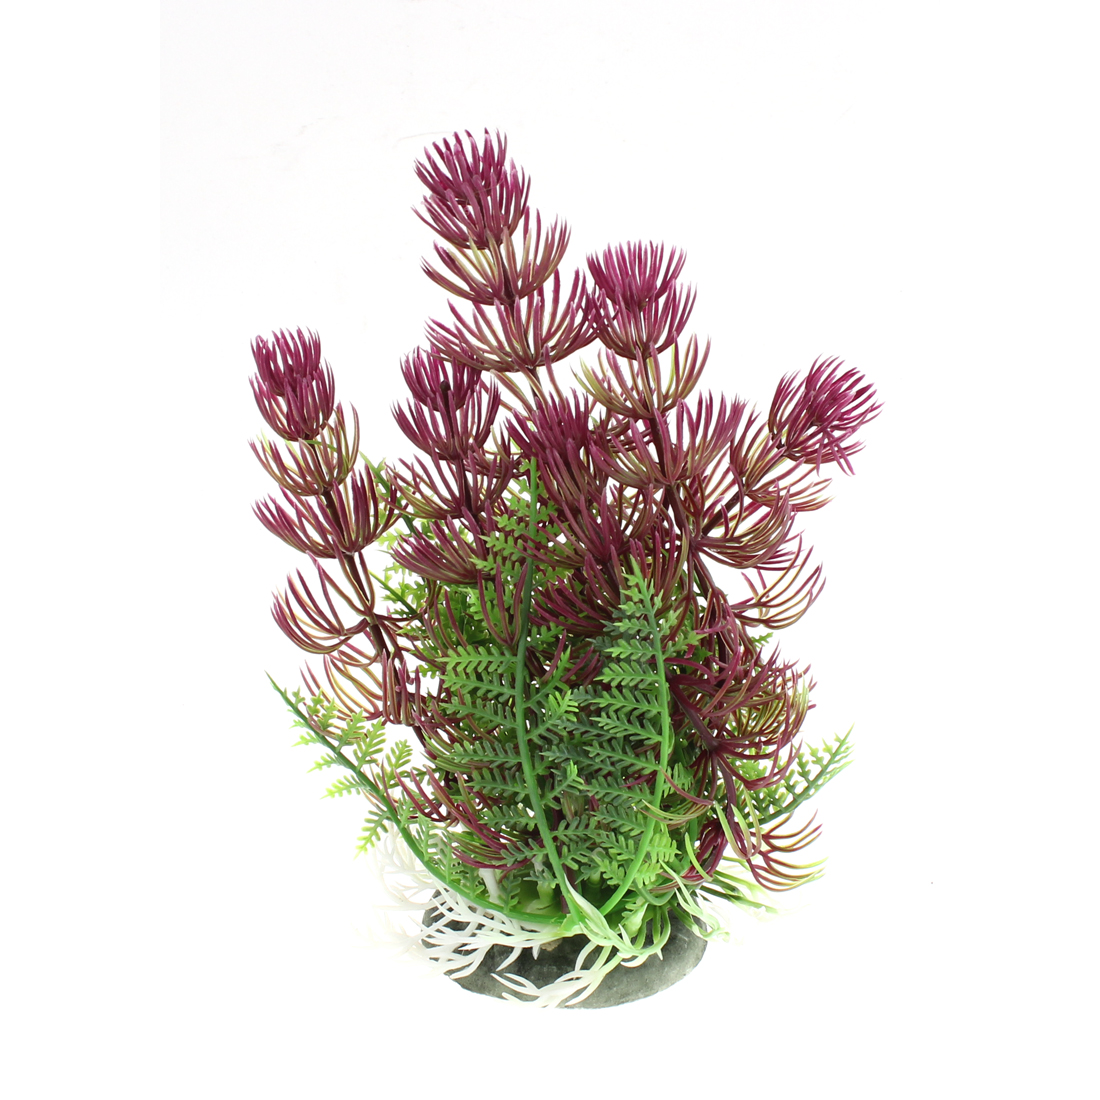 Aquarium Plastic Landscaping Plant Grass Decoration 17cm Height